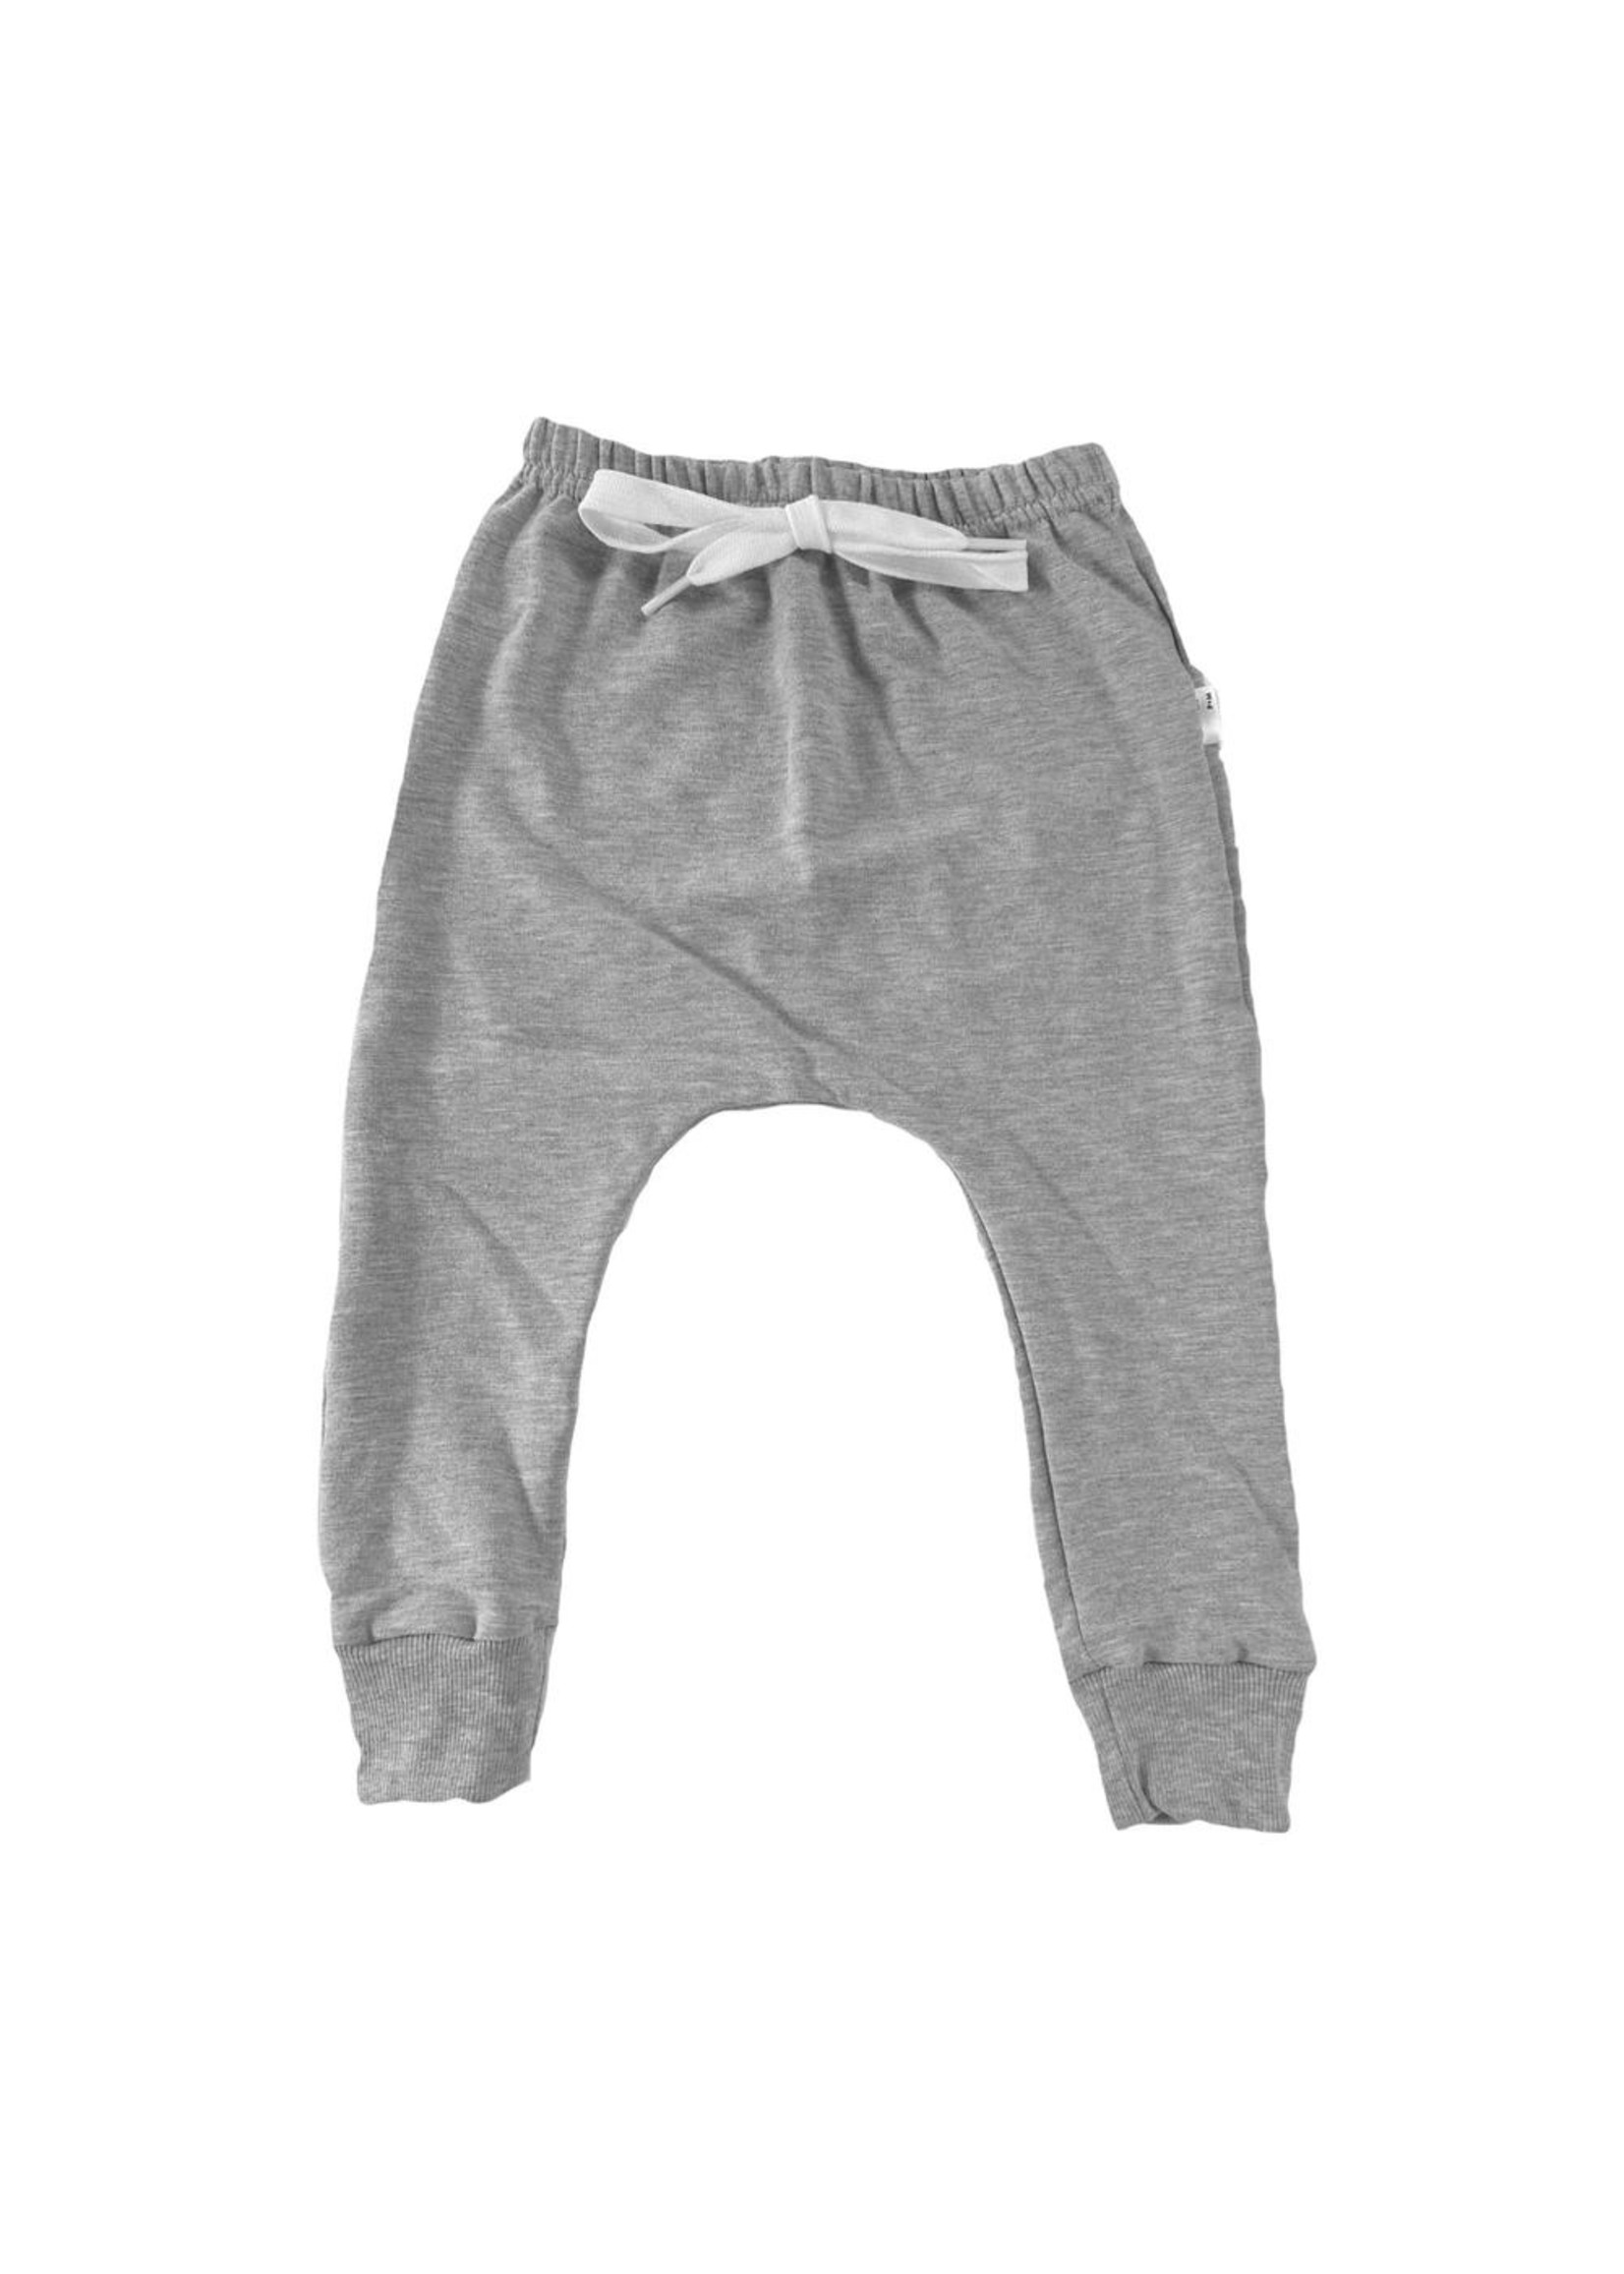 Portage and Main Grey Joggers - 1/2T